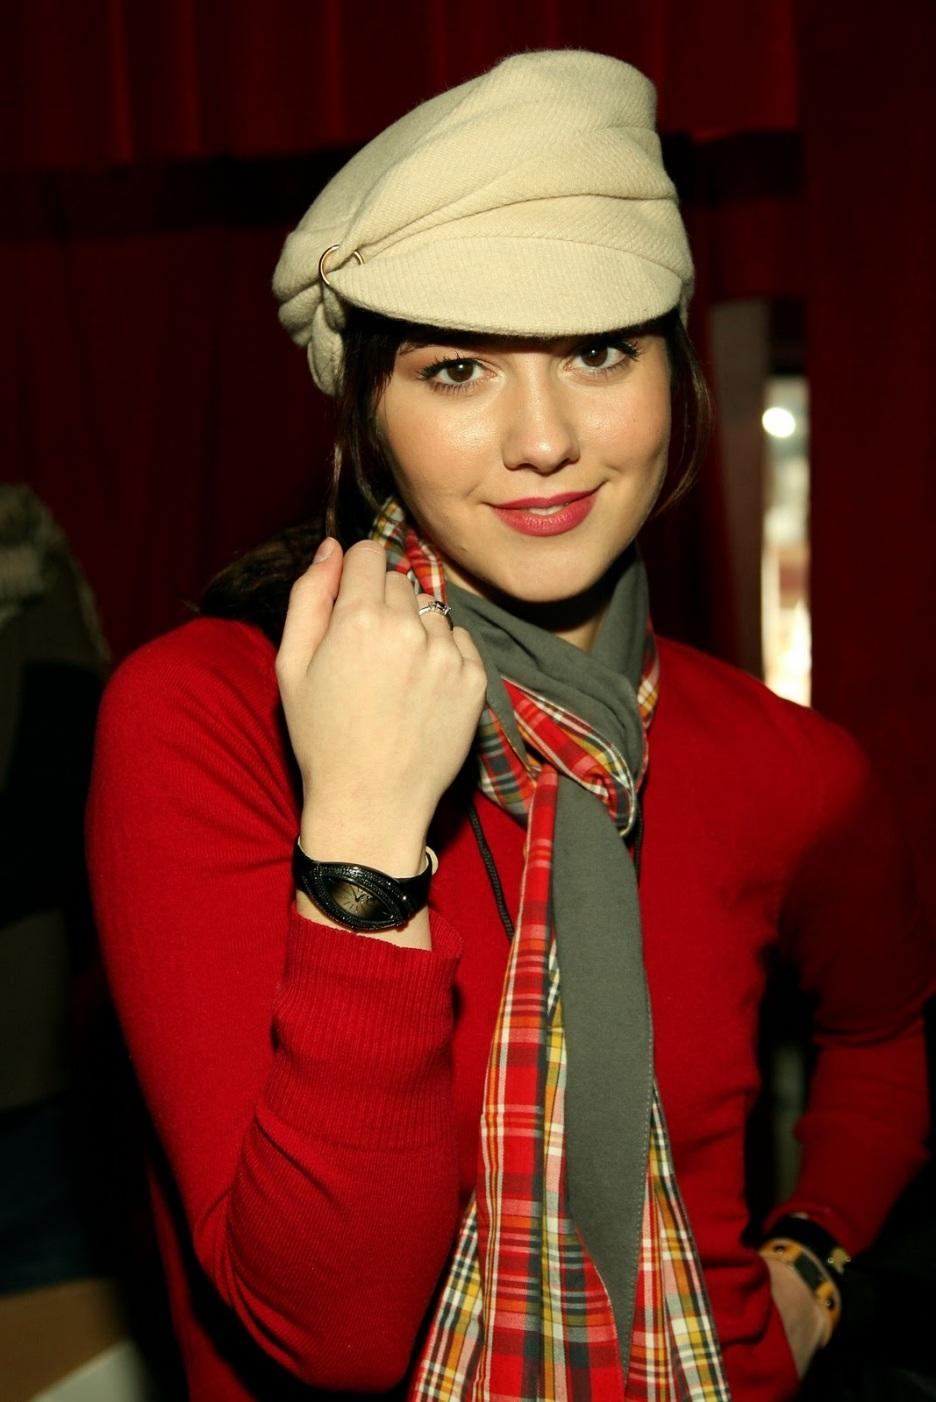 Mary Elizabeth Winstead Nude Photos and Videos | #TheFappening